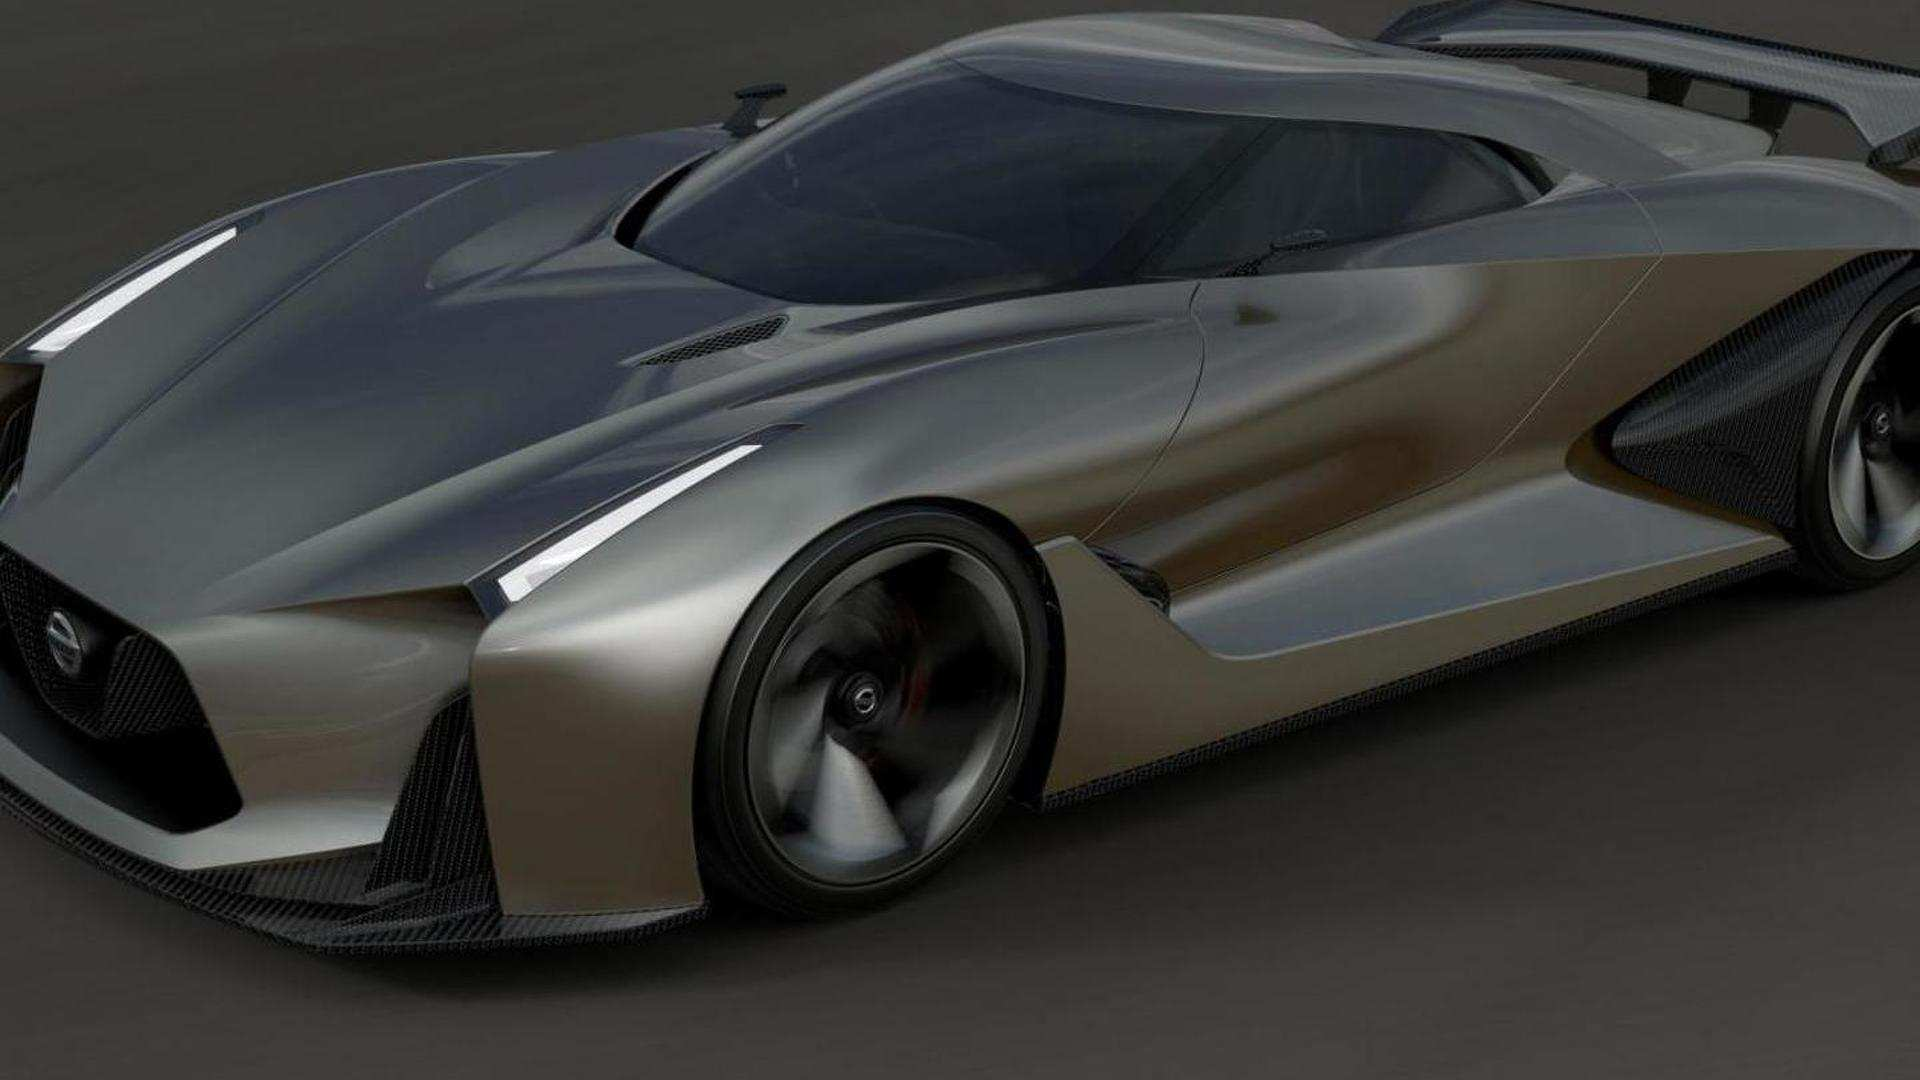 44 Great 2020 Concept Nissan Gtr Prices for 2020 Concept Nissan Gtr